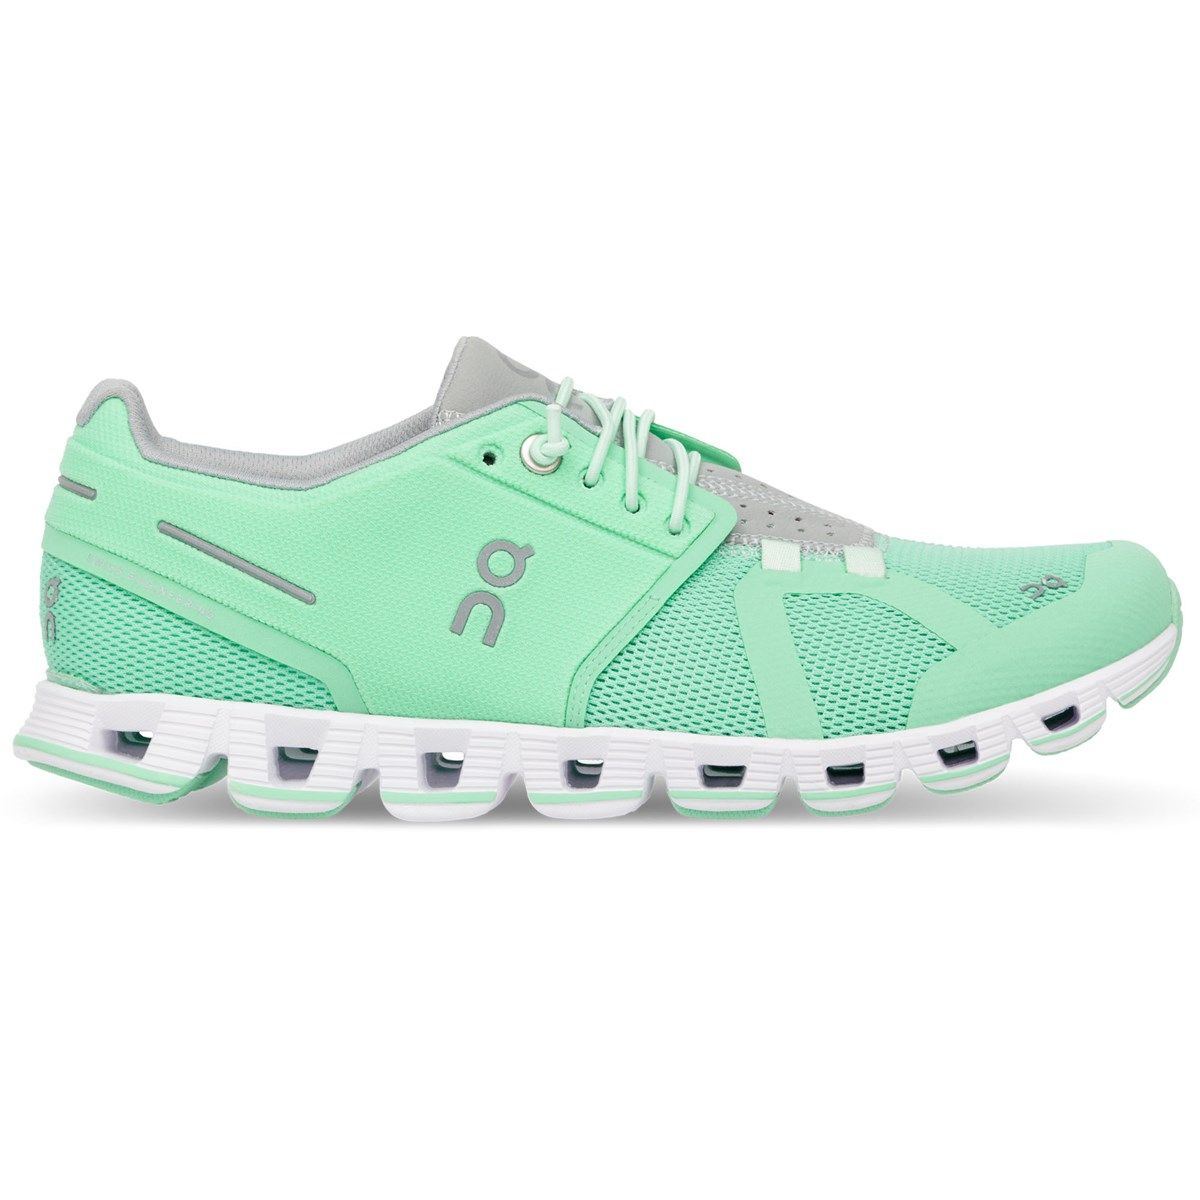 Photo of On Women's Cloud Running Shoes, Mint